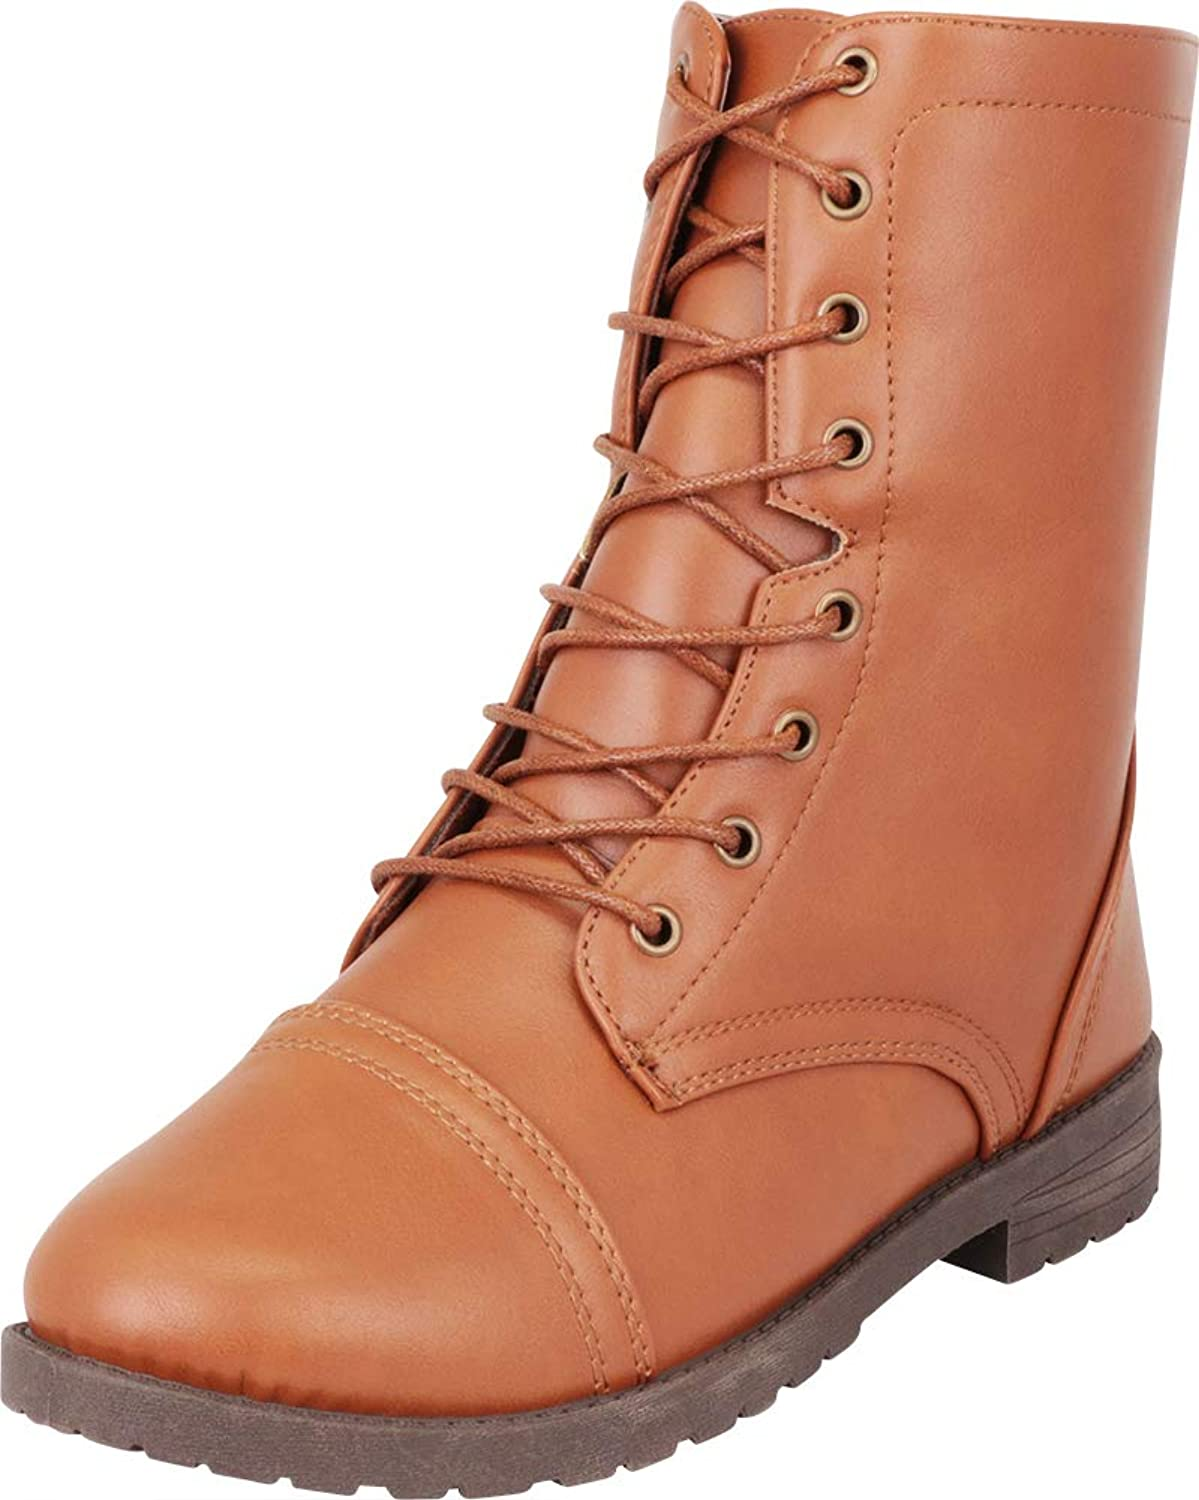 Cambridge Select Women's Round Toe Lace-Up Chunky Low Heel Mid-Calf Combat Boot